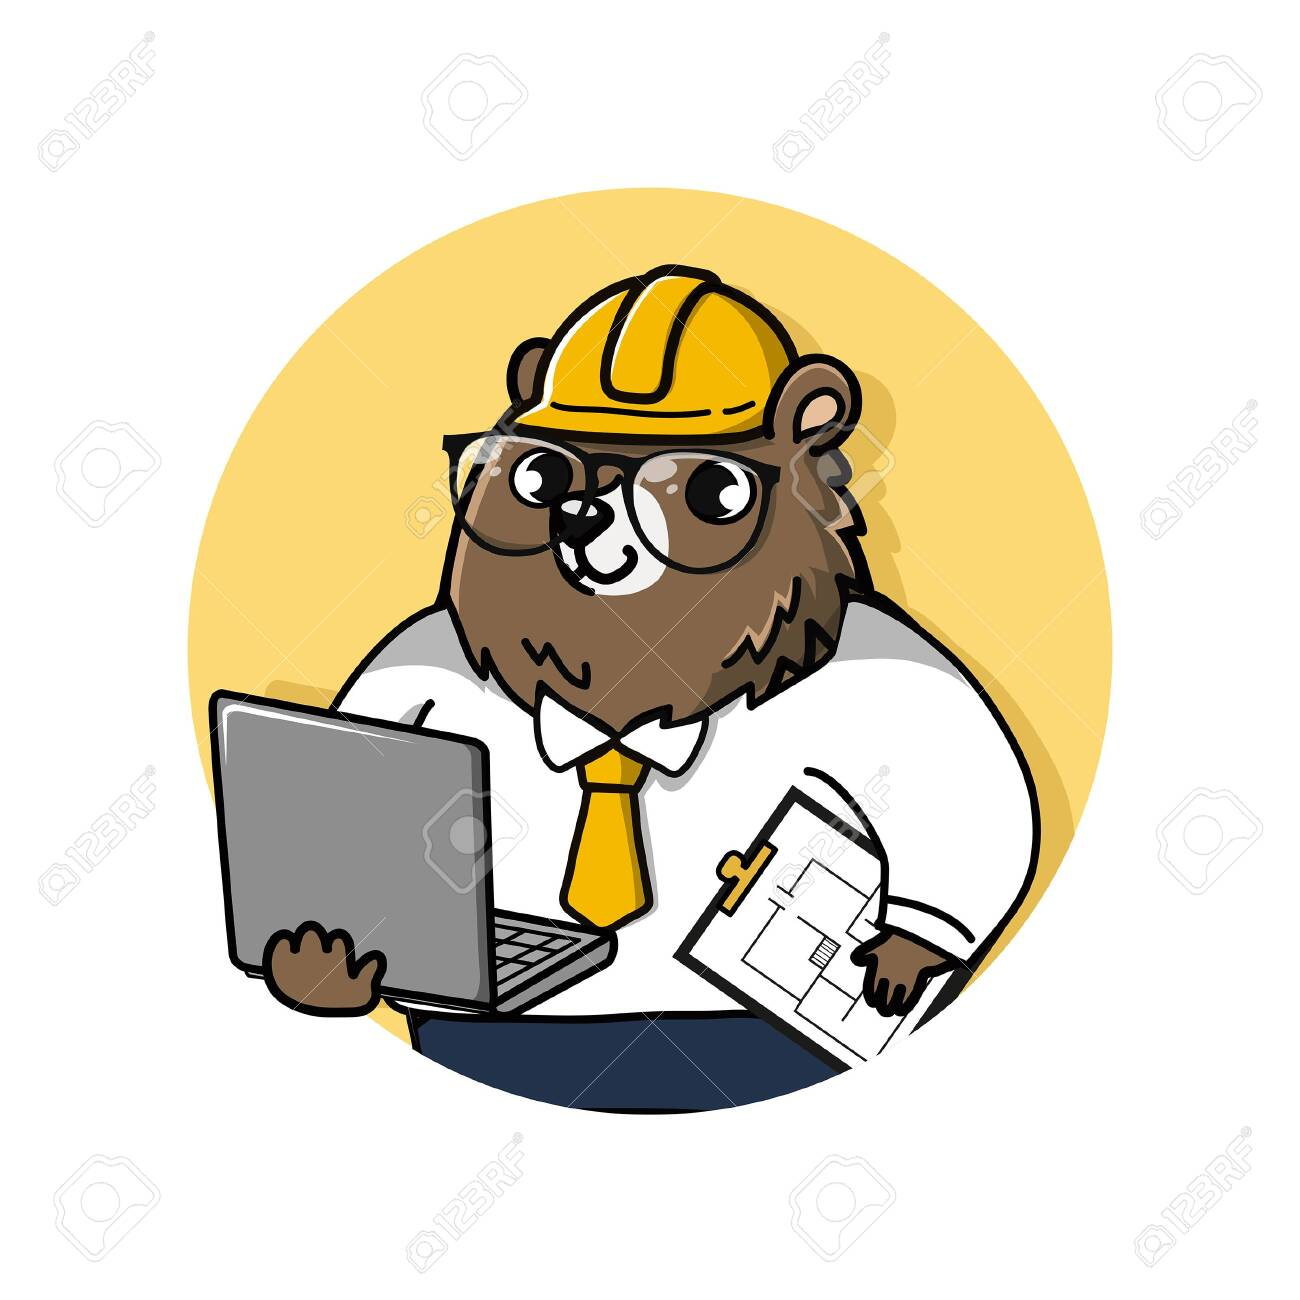 logo cute and friendly bear engineer holds a laptop computer and drawing documents. - 123529070